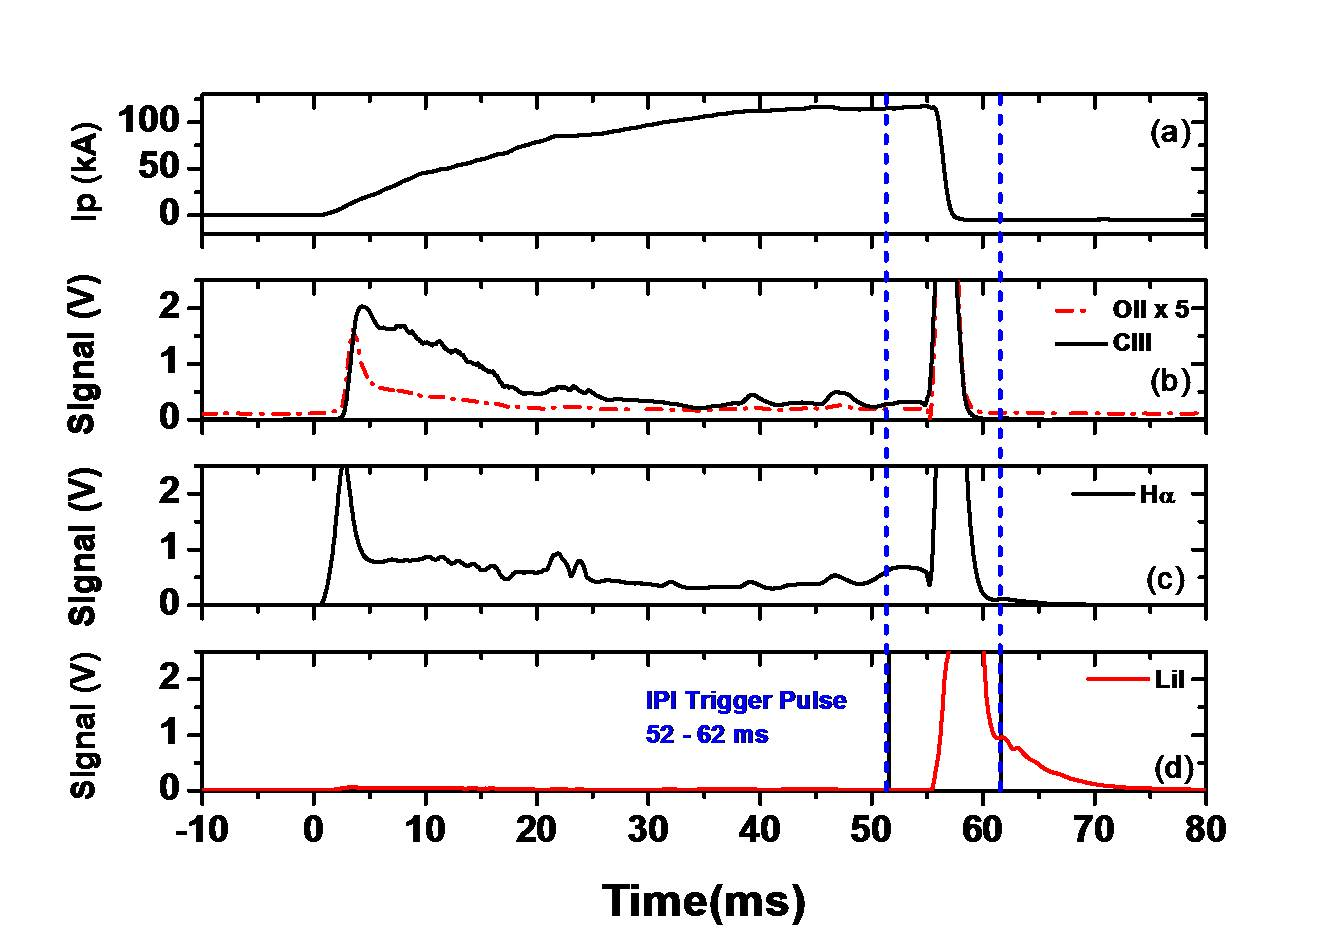 Shot no #33317, a typical IPI discharge of 118 kA plasma current and 58 ms duration (c). IPI pulse present at 52-62 ms (d), this sharply mitigates the plasma disruption after the pulse, which is also reflected in impurity and Hα signal (a) & (b).